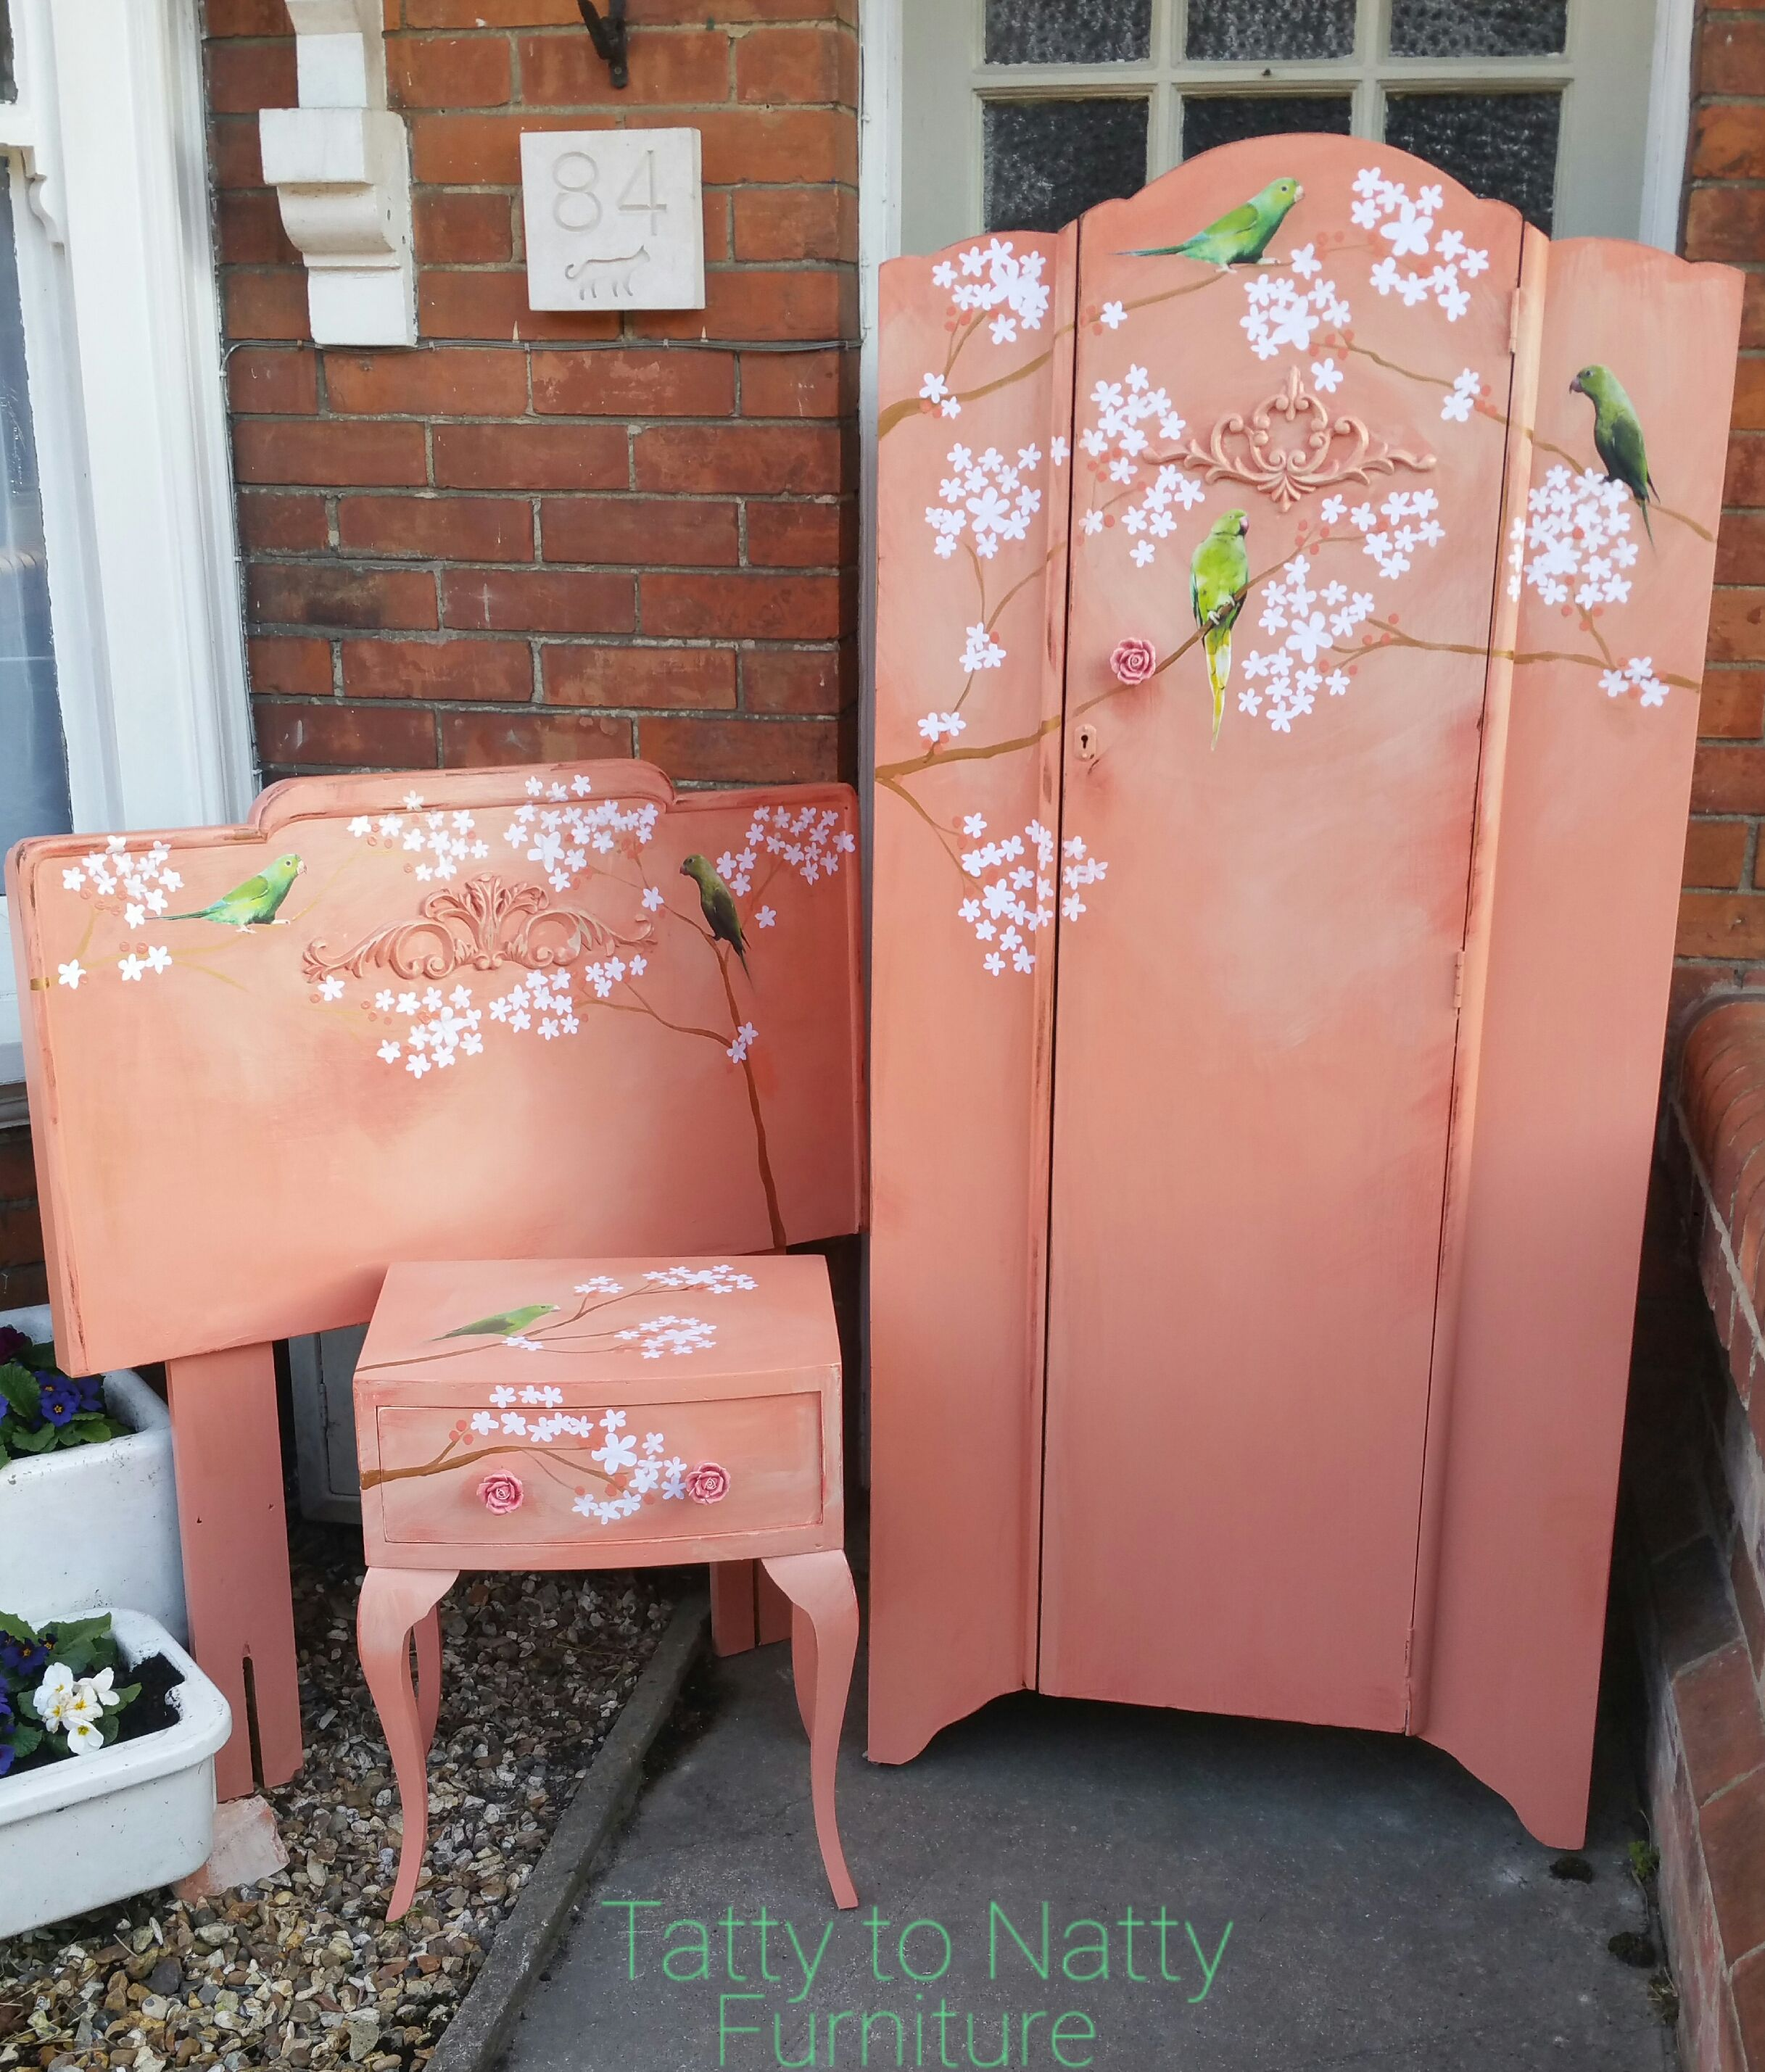 shabby chic childrens bedroom furniture. Painted Vintage Furniture Set For Girls Nursery Bedroom Wardrobe, Headboard With Shabby Chic Moulding And Childrens R